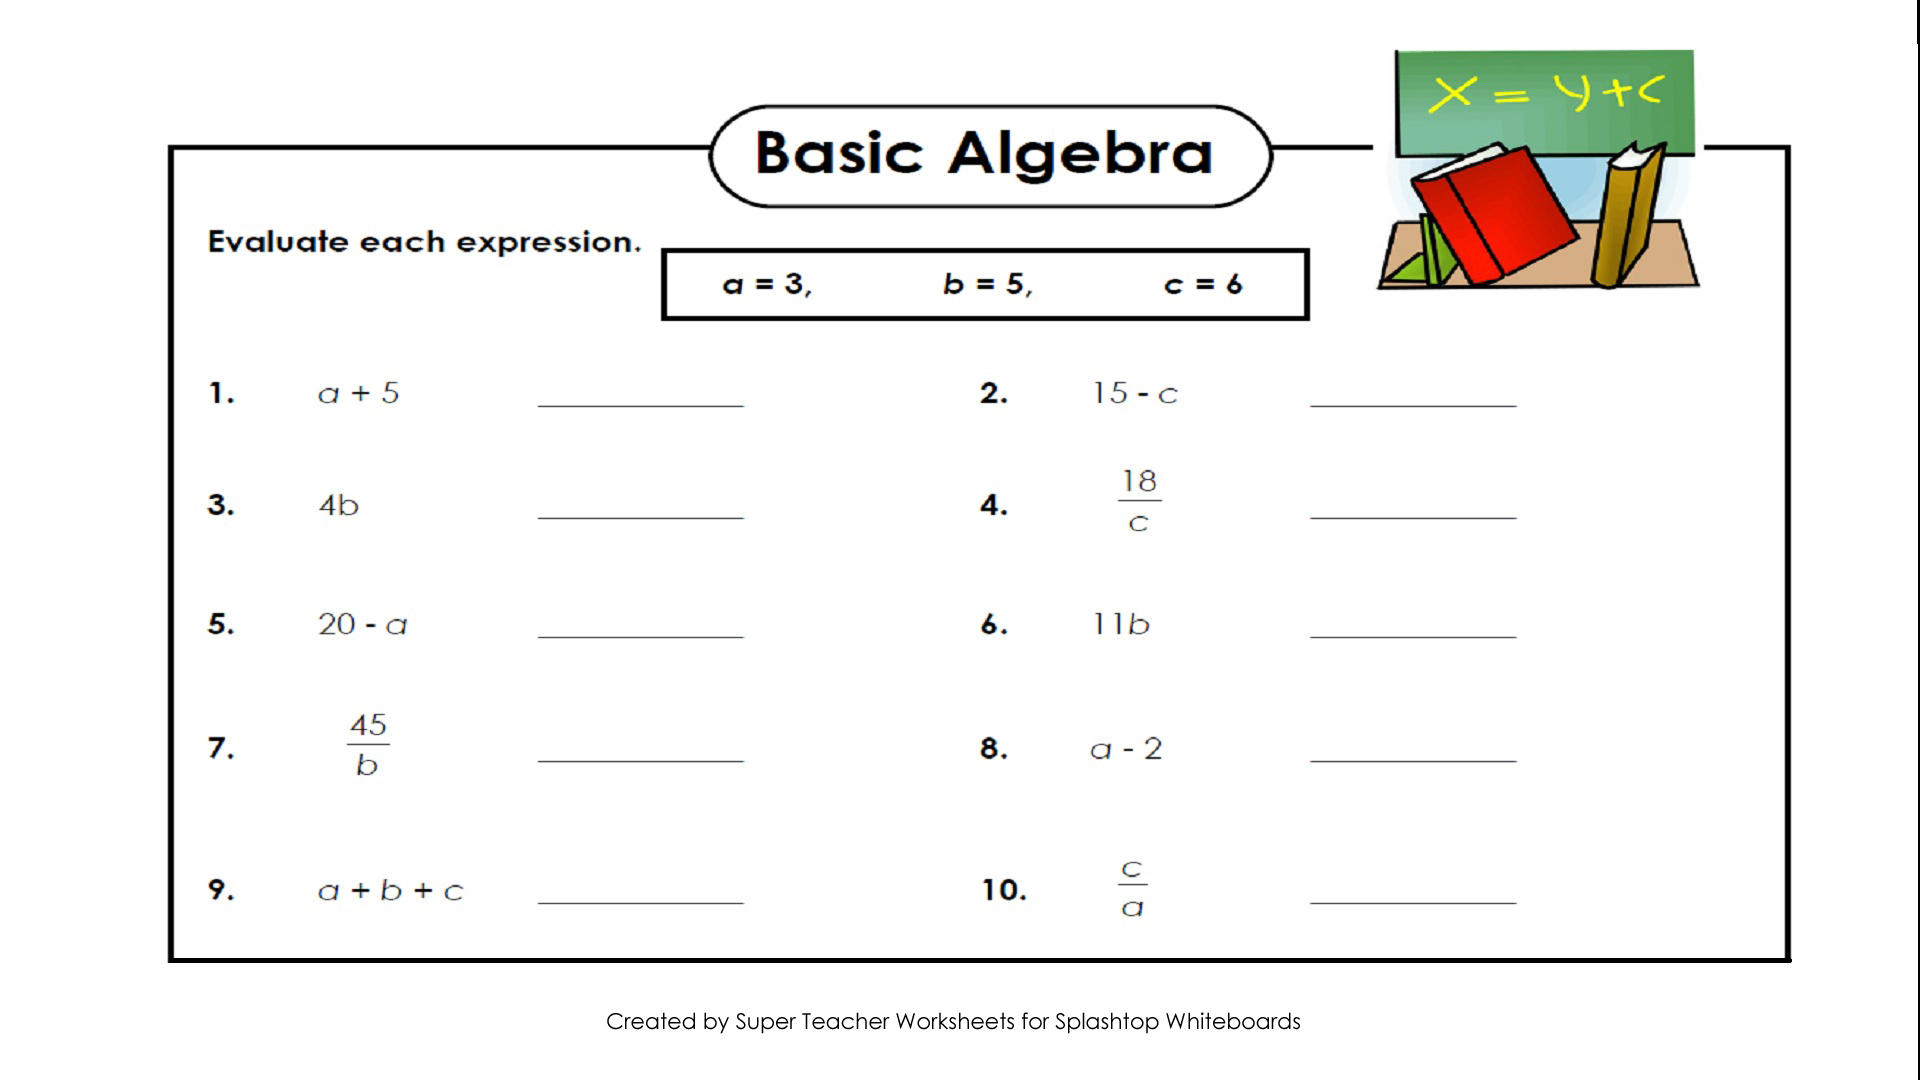 worksheet Teacher Super Worksheets splashtop whiteboard background graphics algebra basic